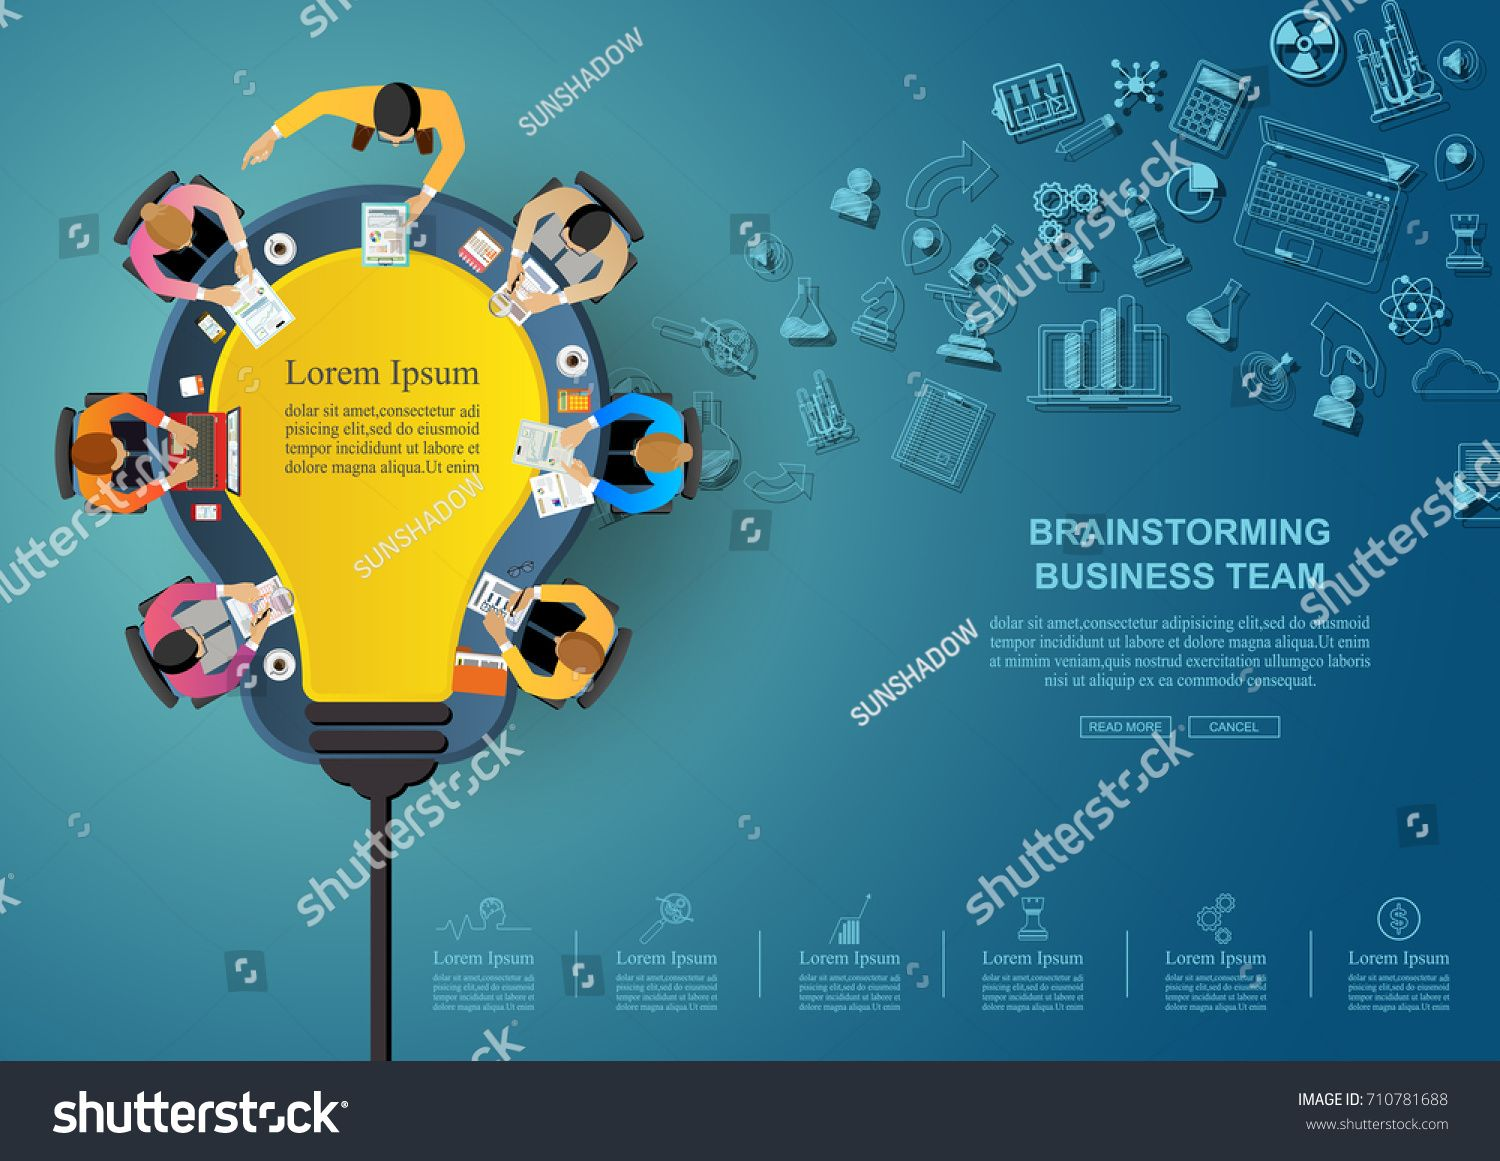 Business Meeting And Brainstorming Idea Concept For Vector Infographic With Light Bulb Template Creative Diagram Teamwork Illustration People Team Icon